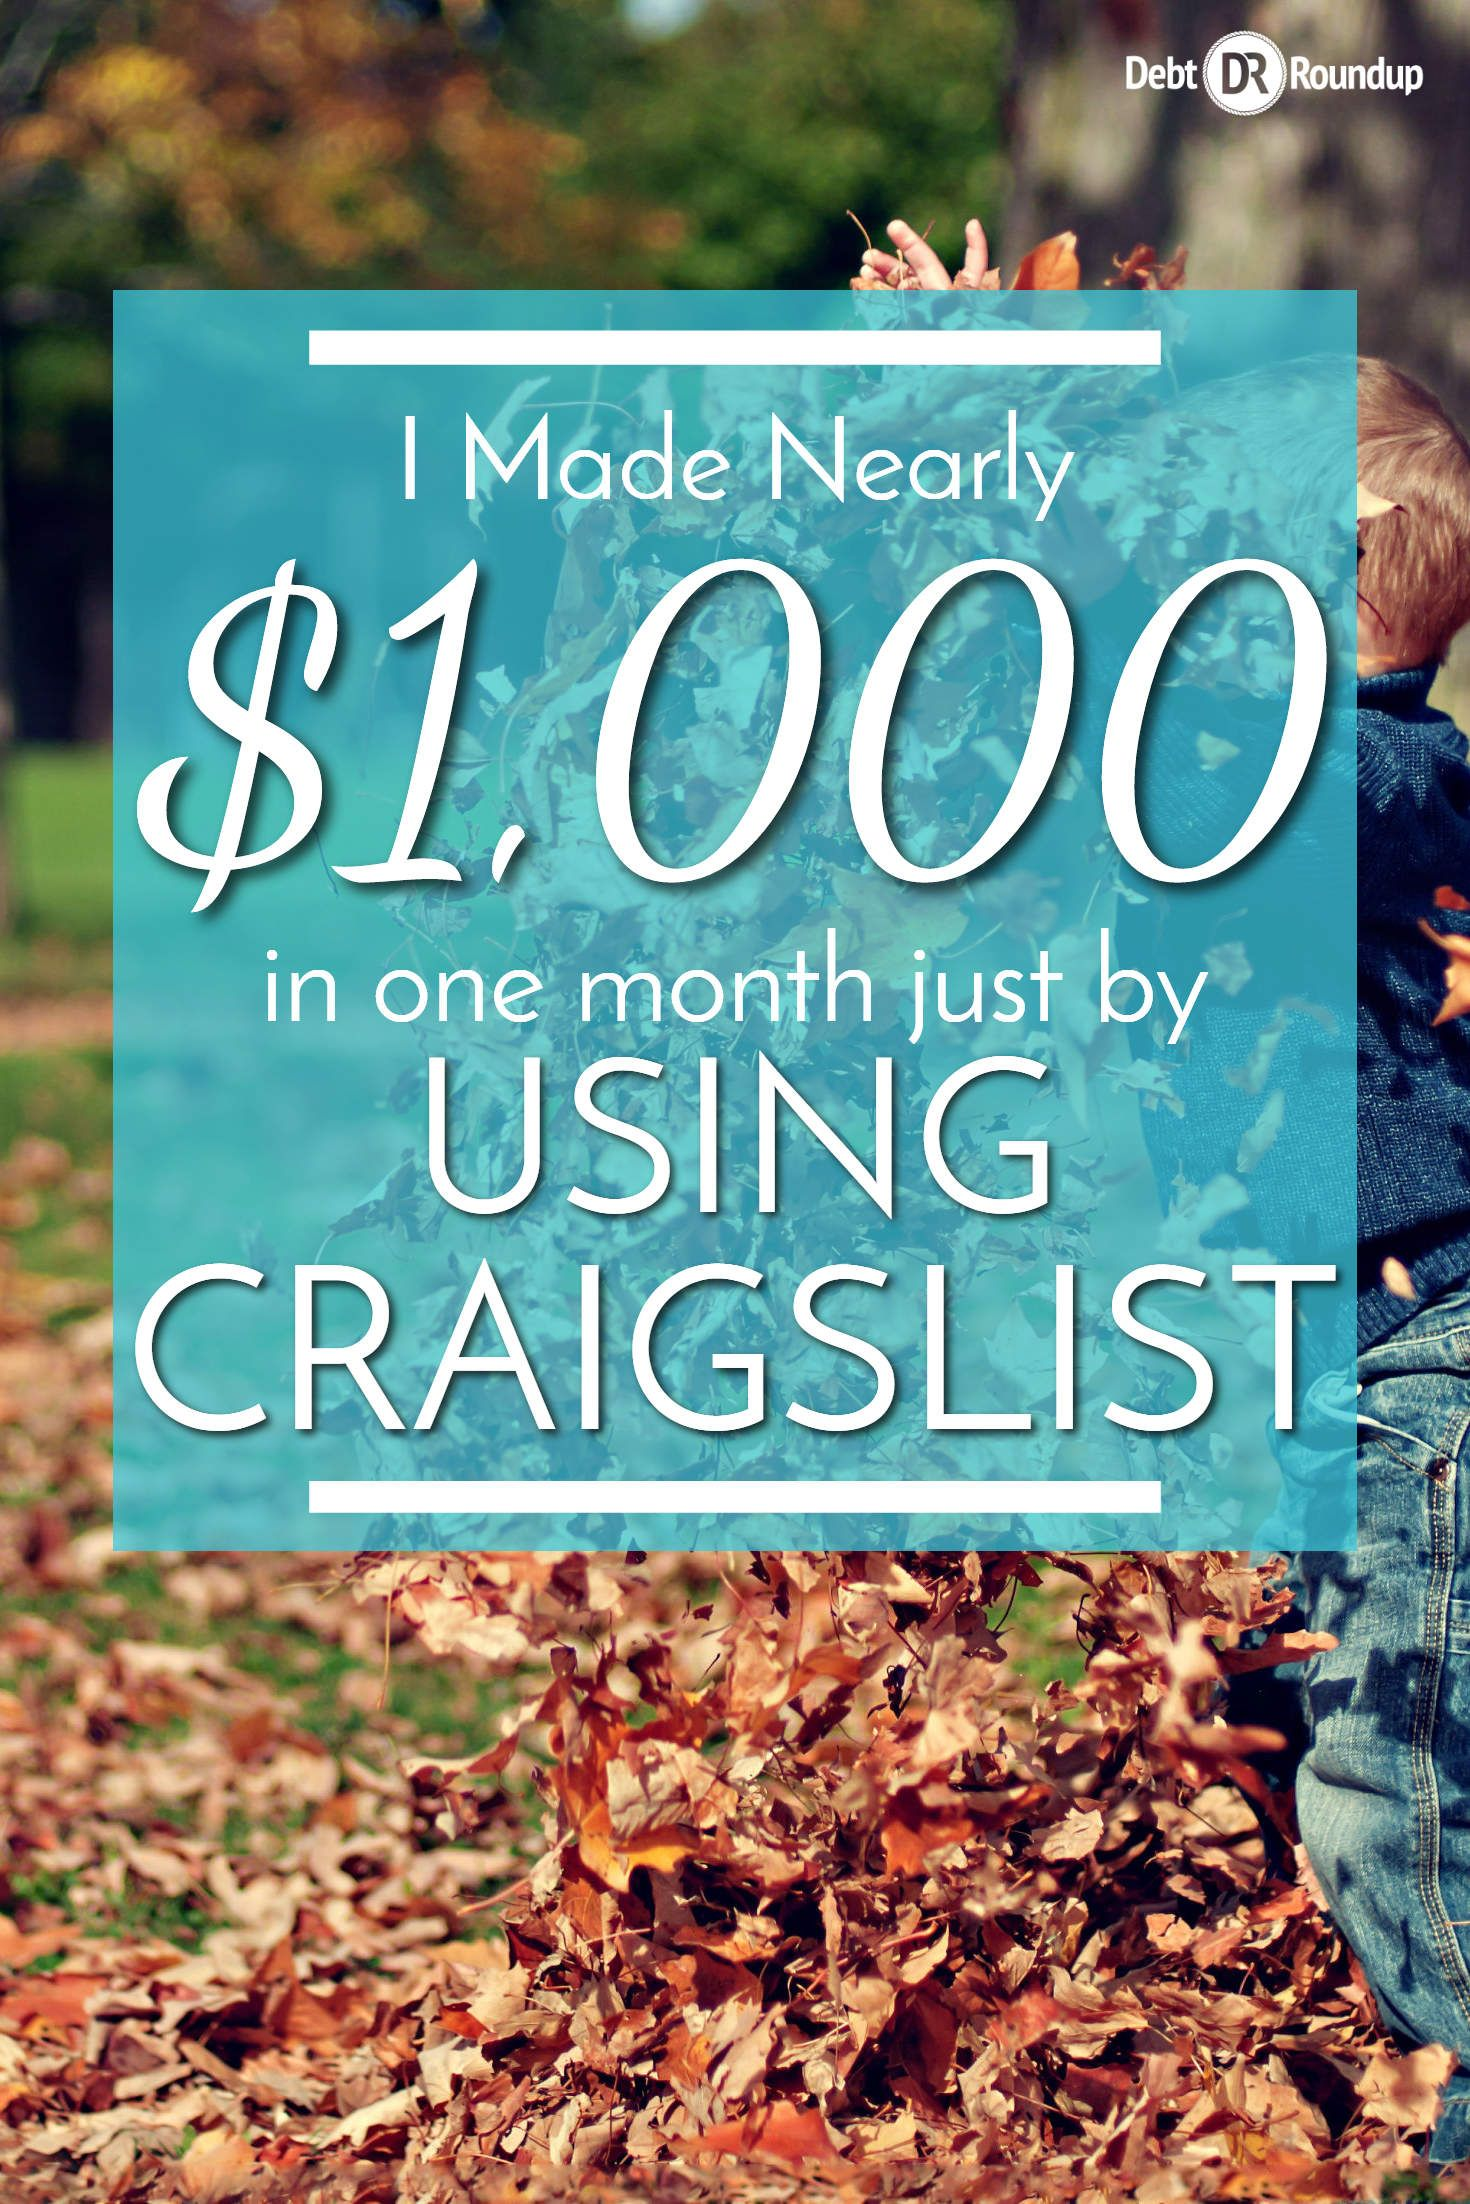 How I Made Nearly 1 000 In A Month Using Craigslist Earn More Money Earn Money Way To Make Money